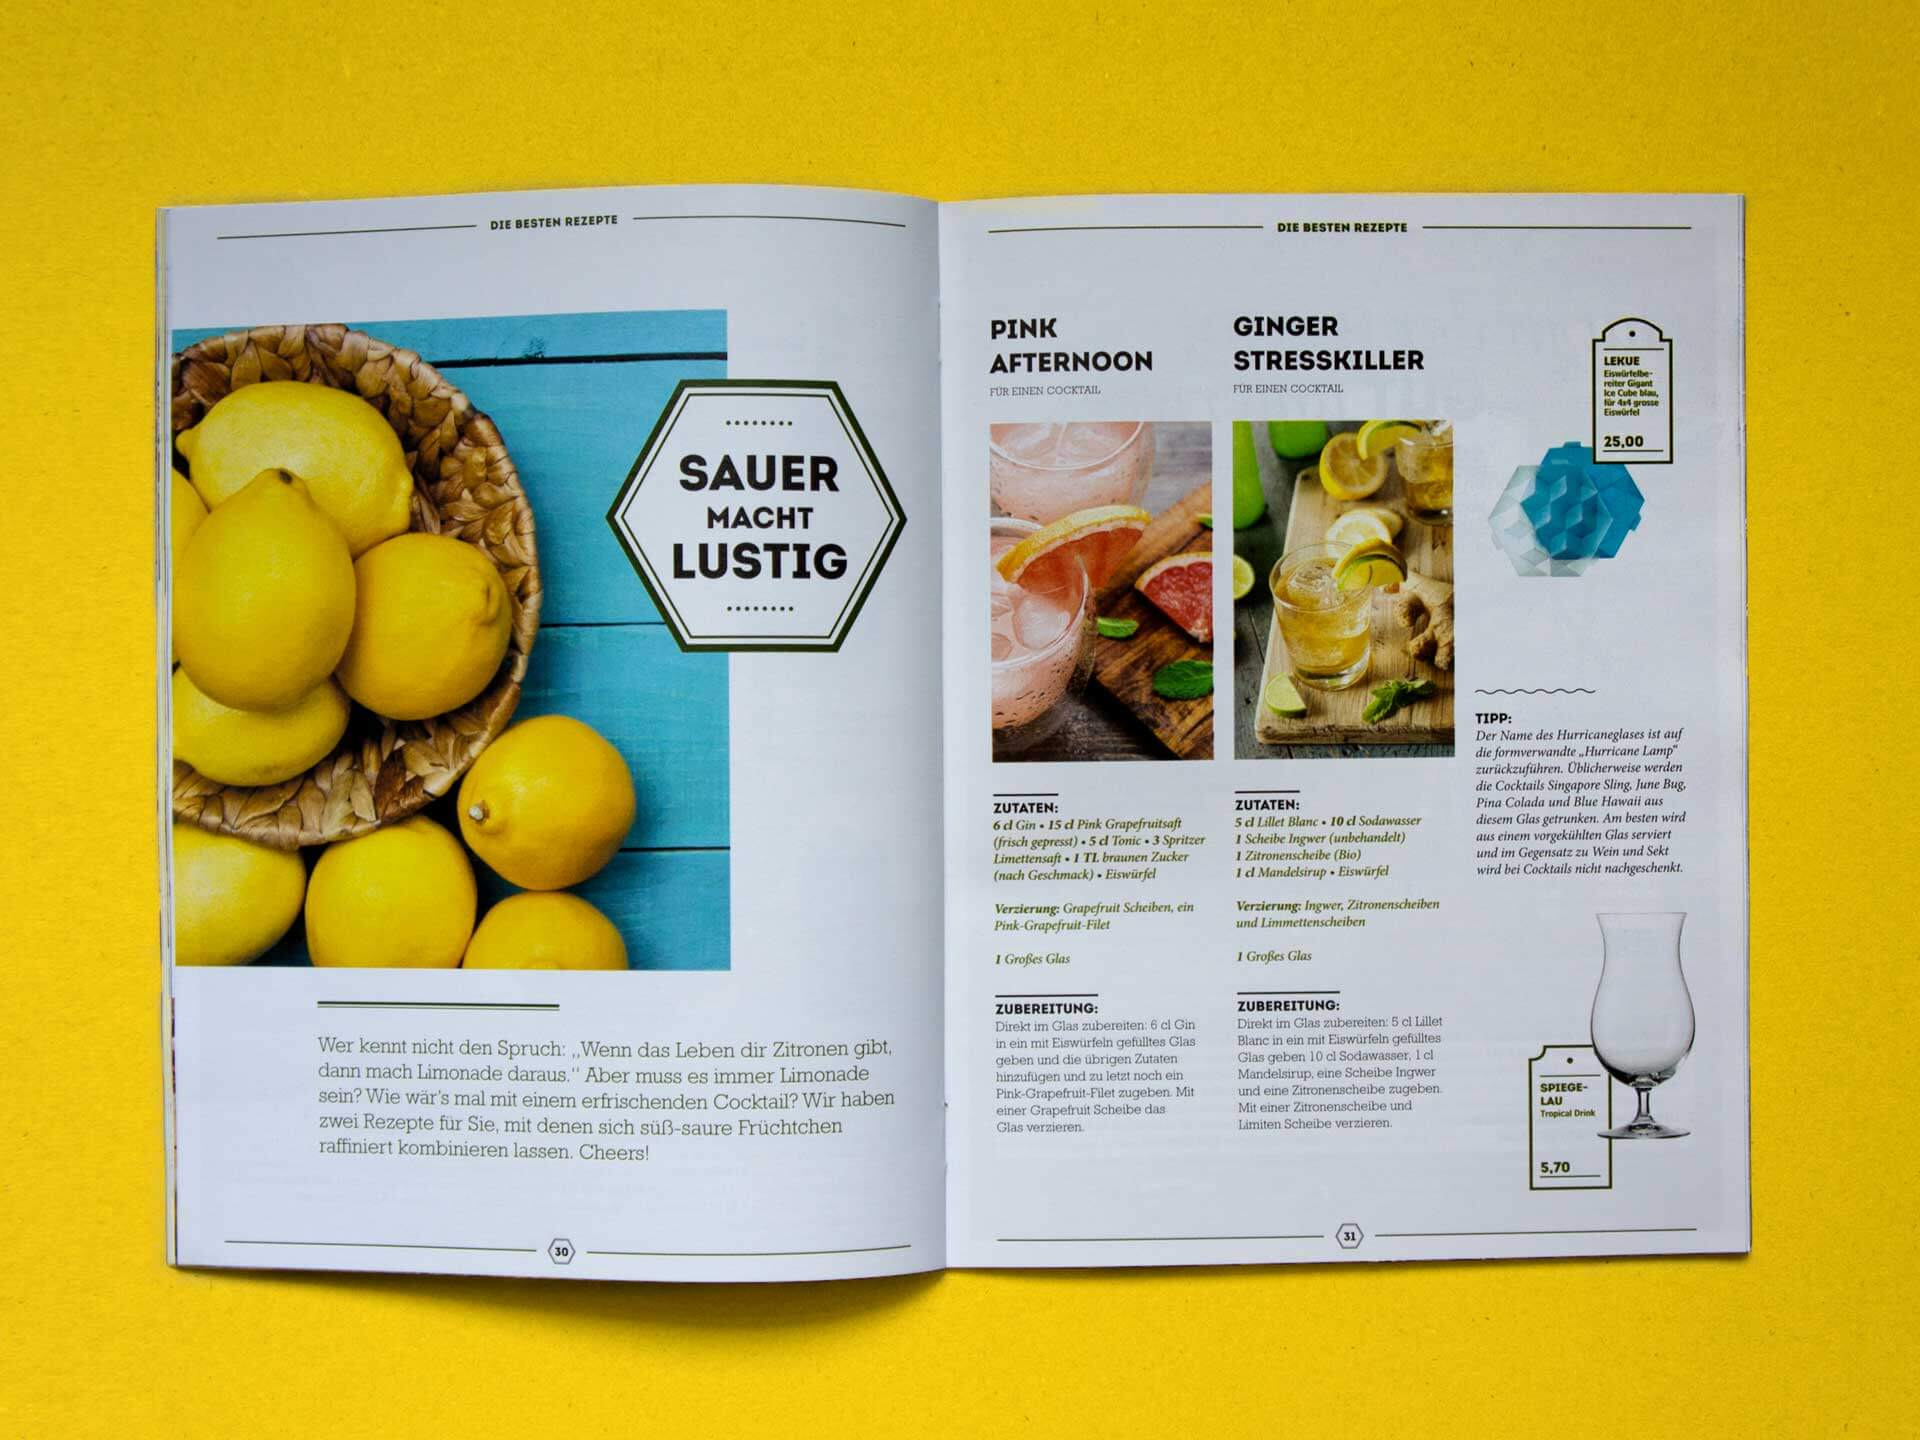 Spread with Cocktail Tipps inside the Seraph Magazine by Kustermann